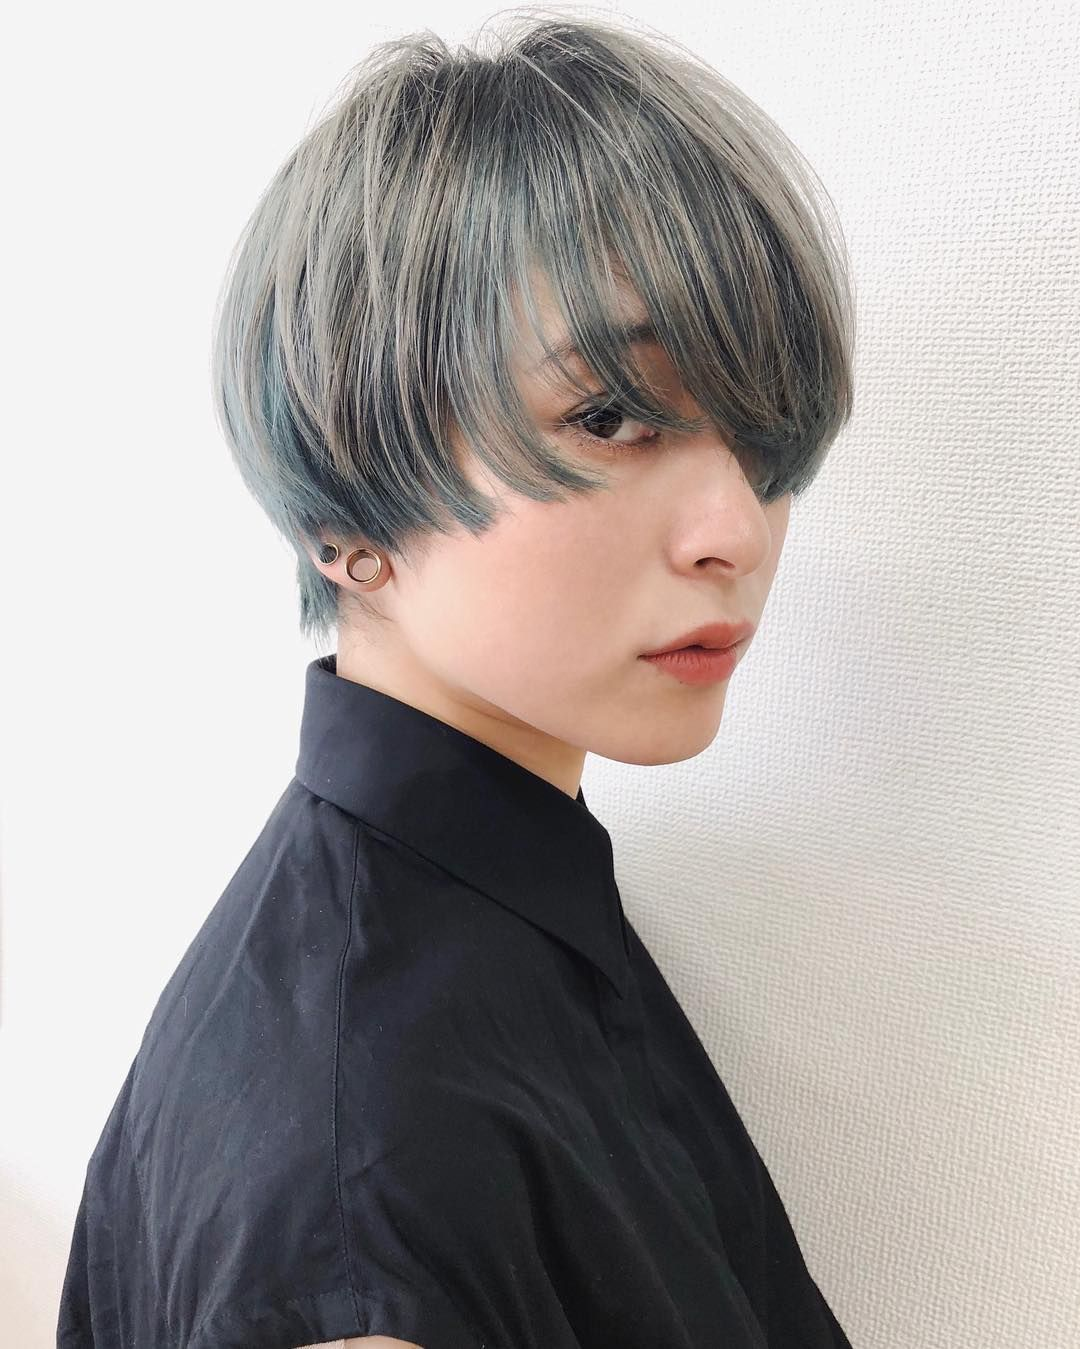 Dab On Instagram Today S Hair Style Hair Dab Miyoko